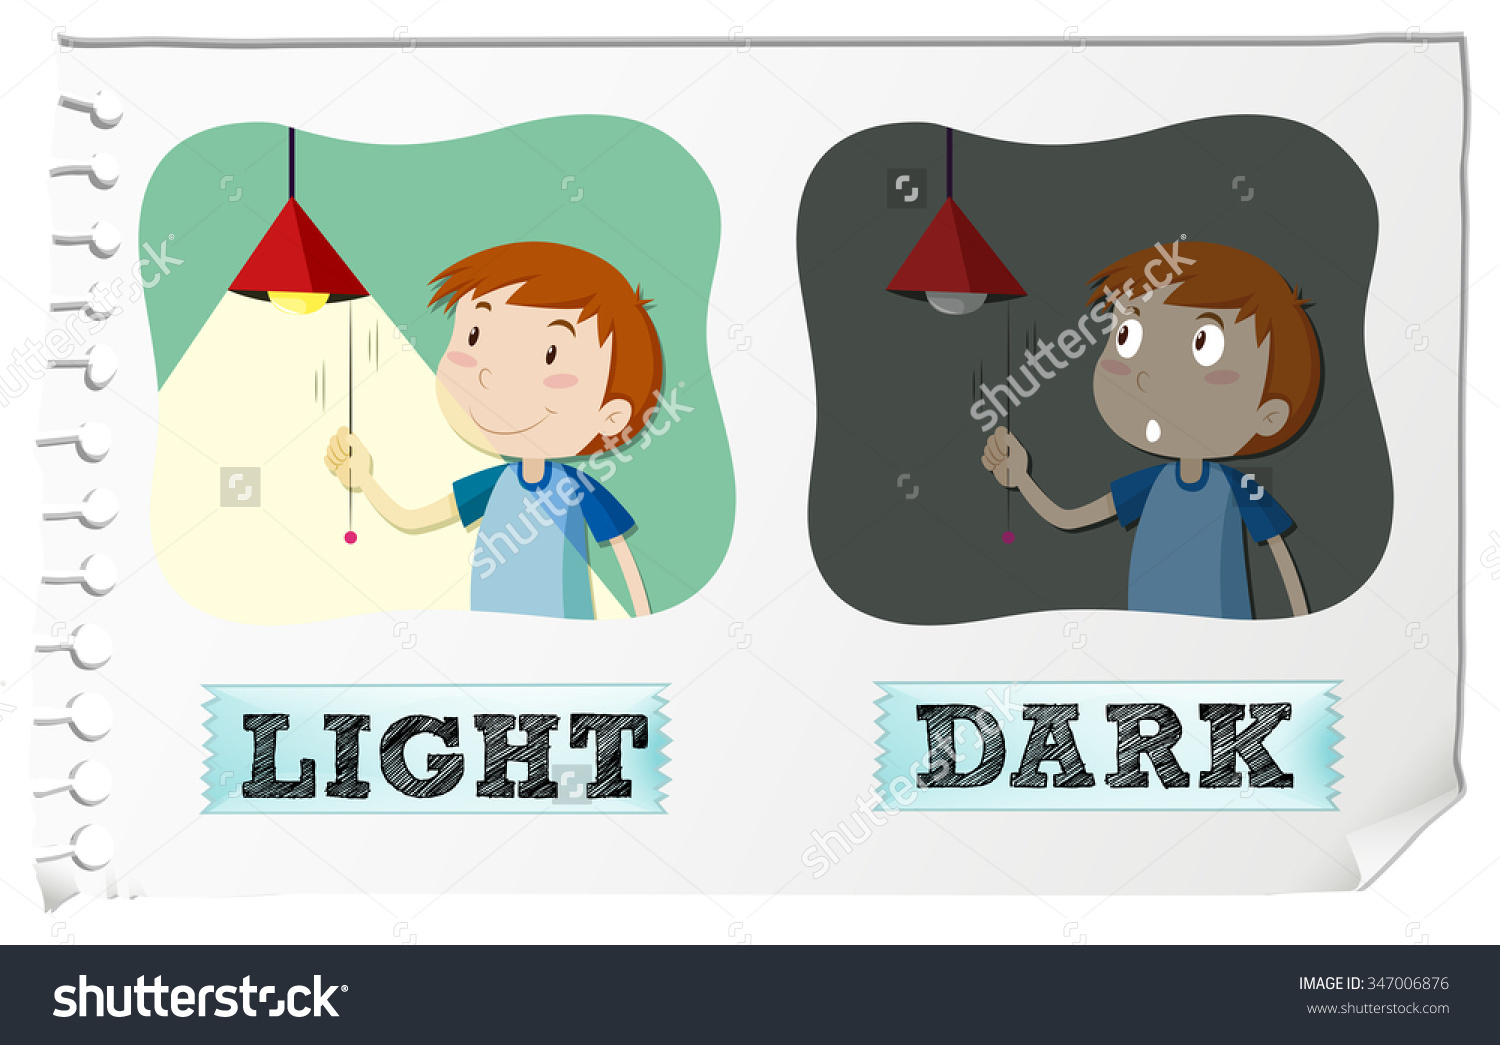 Opposite Adjectives Light Dark Illustration Stock Vector 347006876.